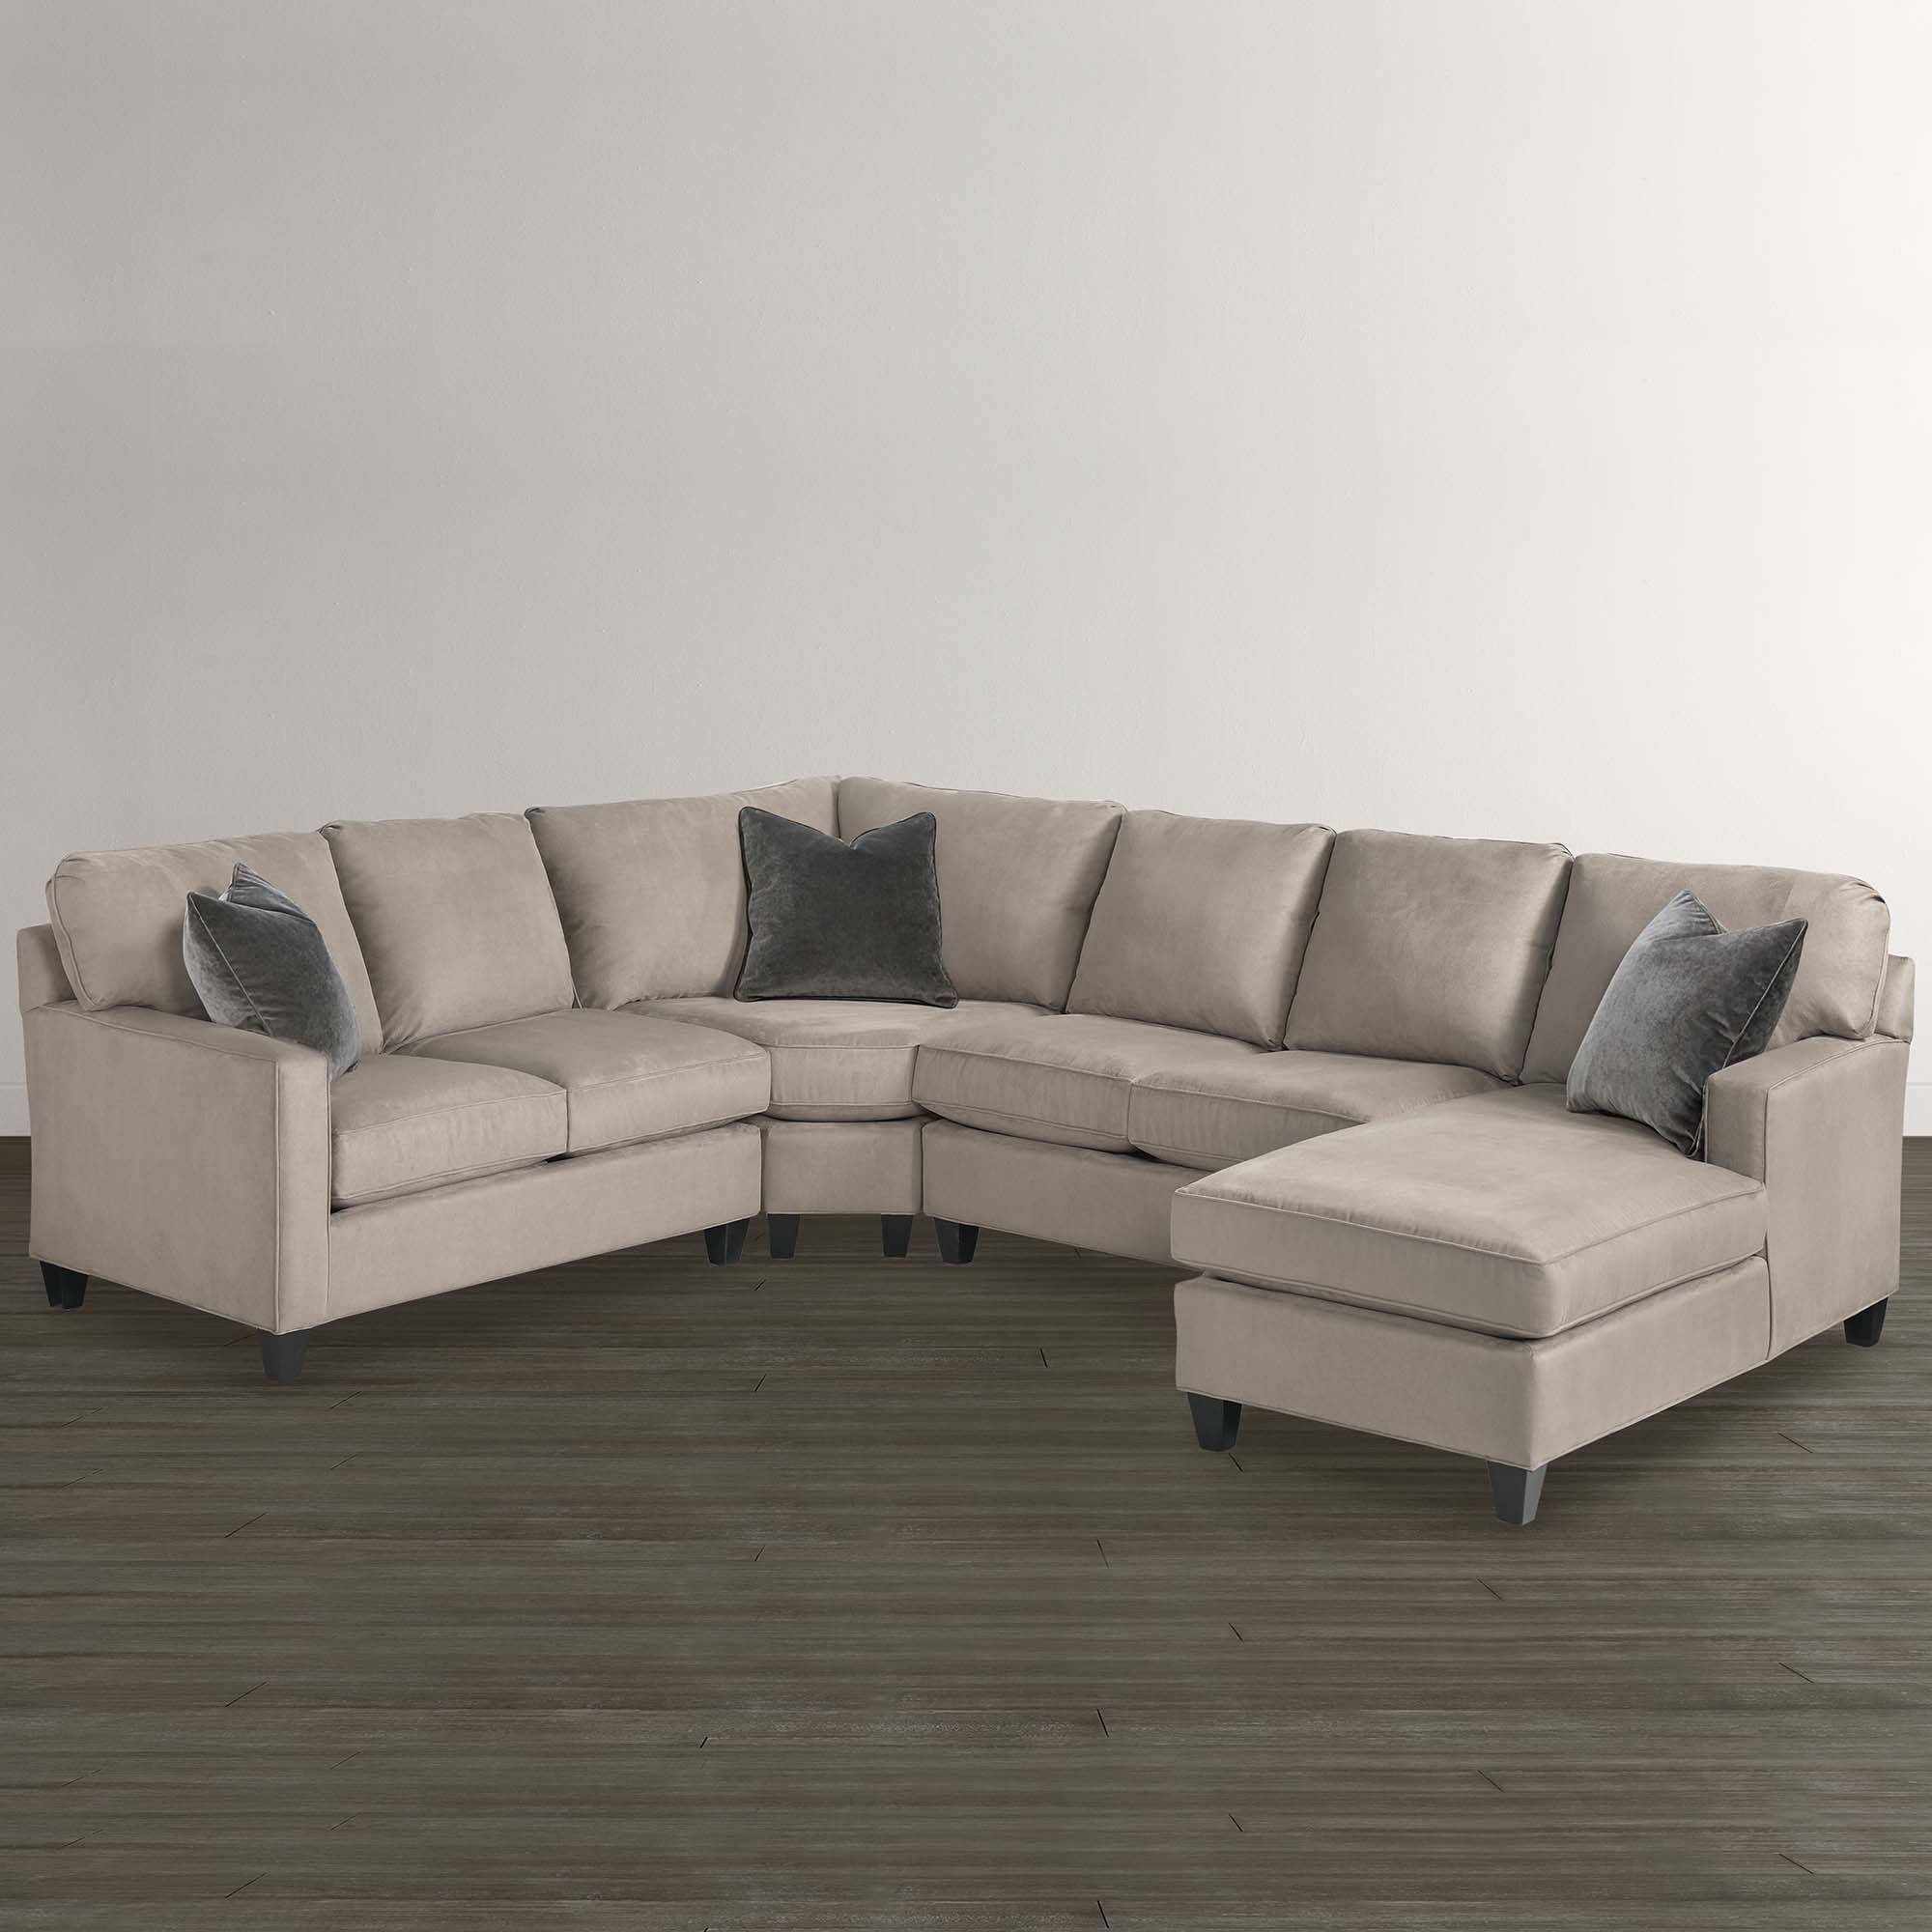 comforter size additional with pieces full sofas adding microfiber couch chaise reclining recliner of leather sofa grey and comfortable natuzzi sectional in seating